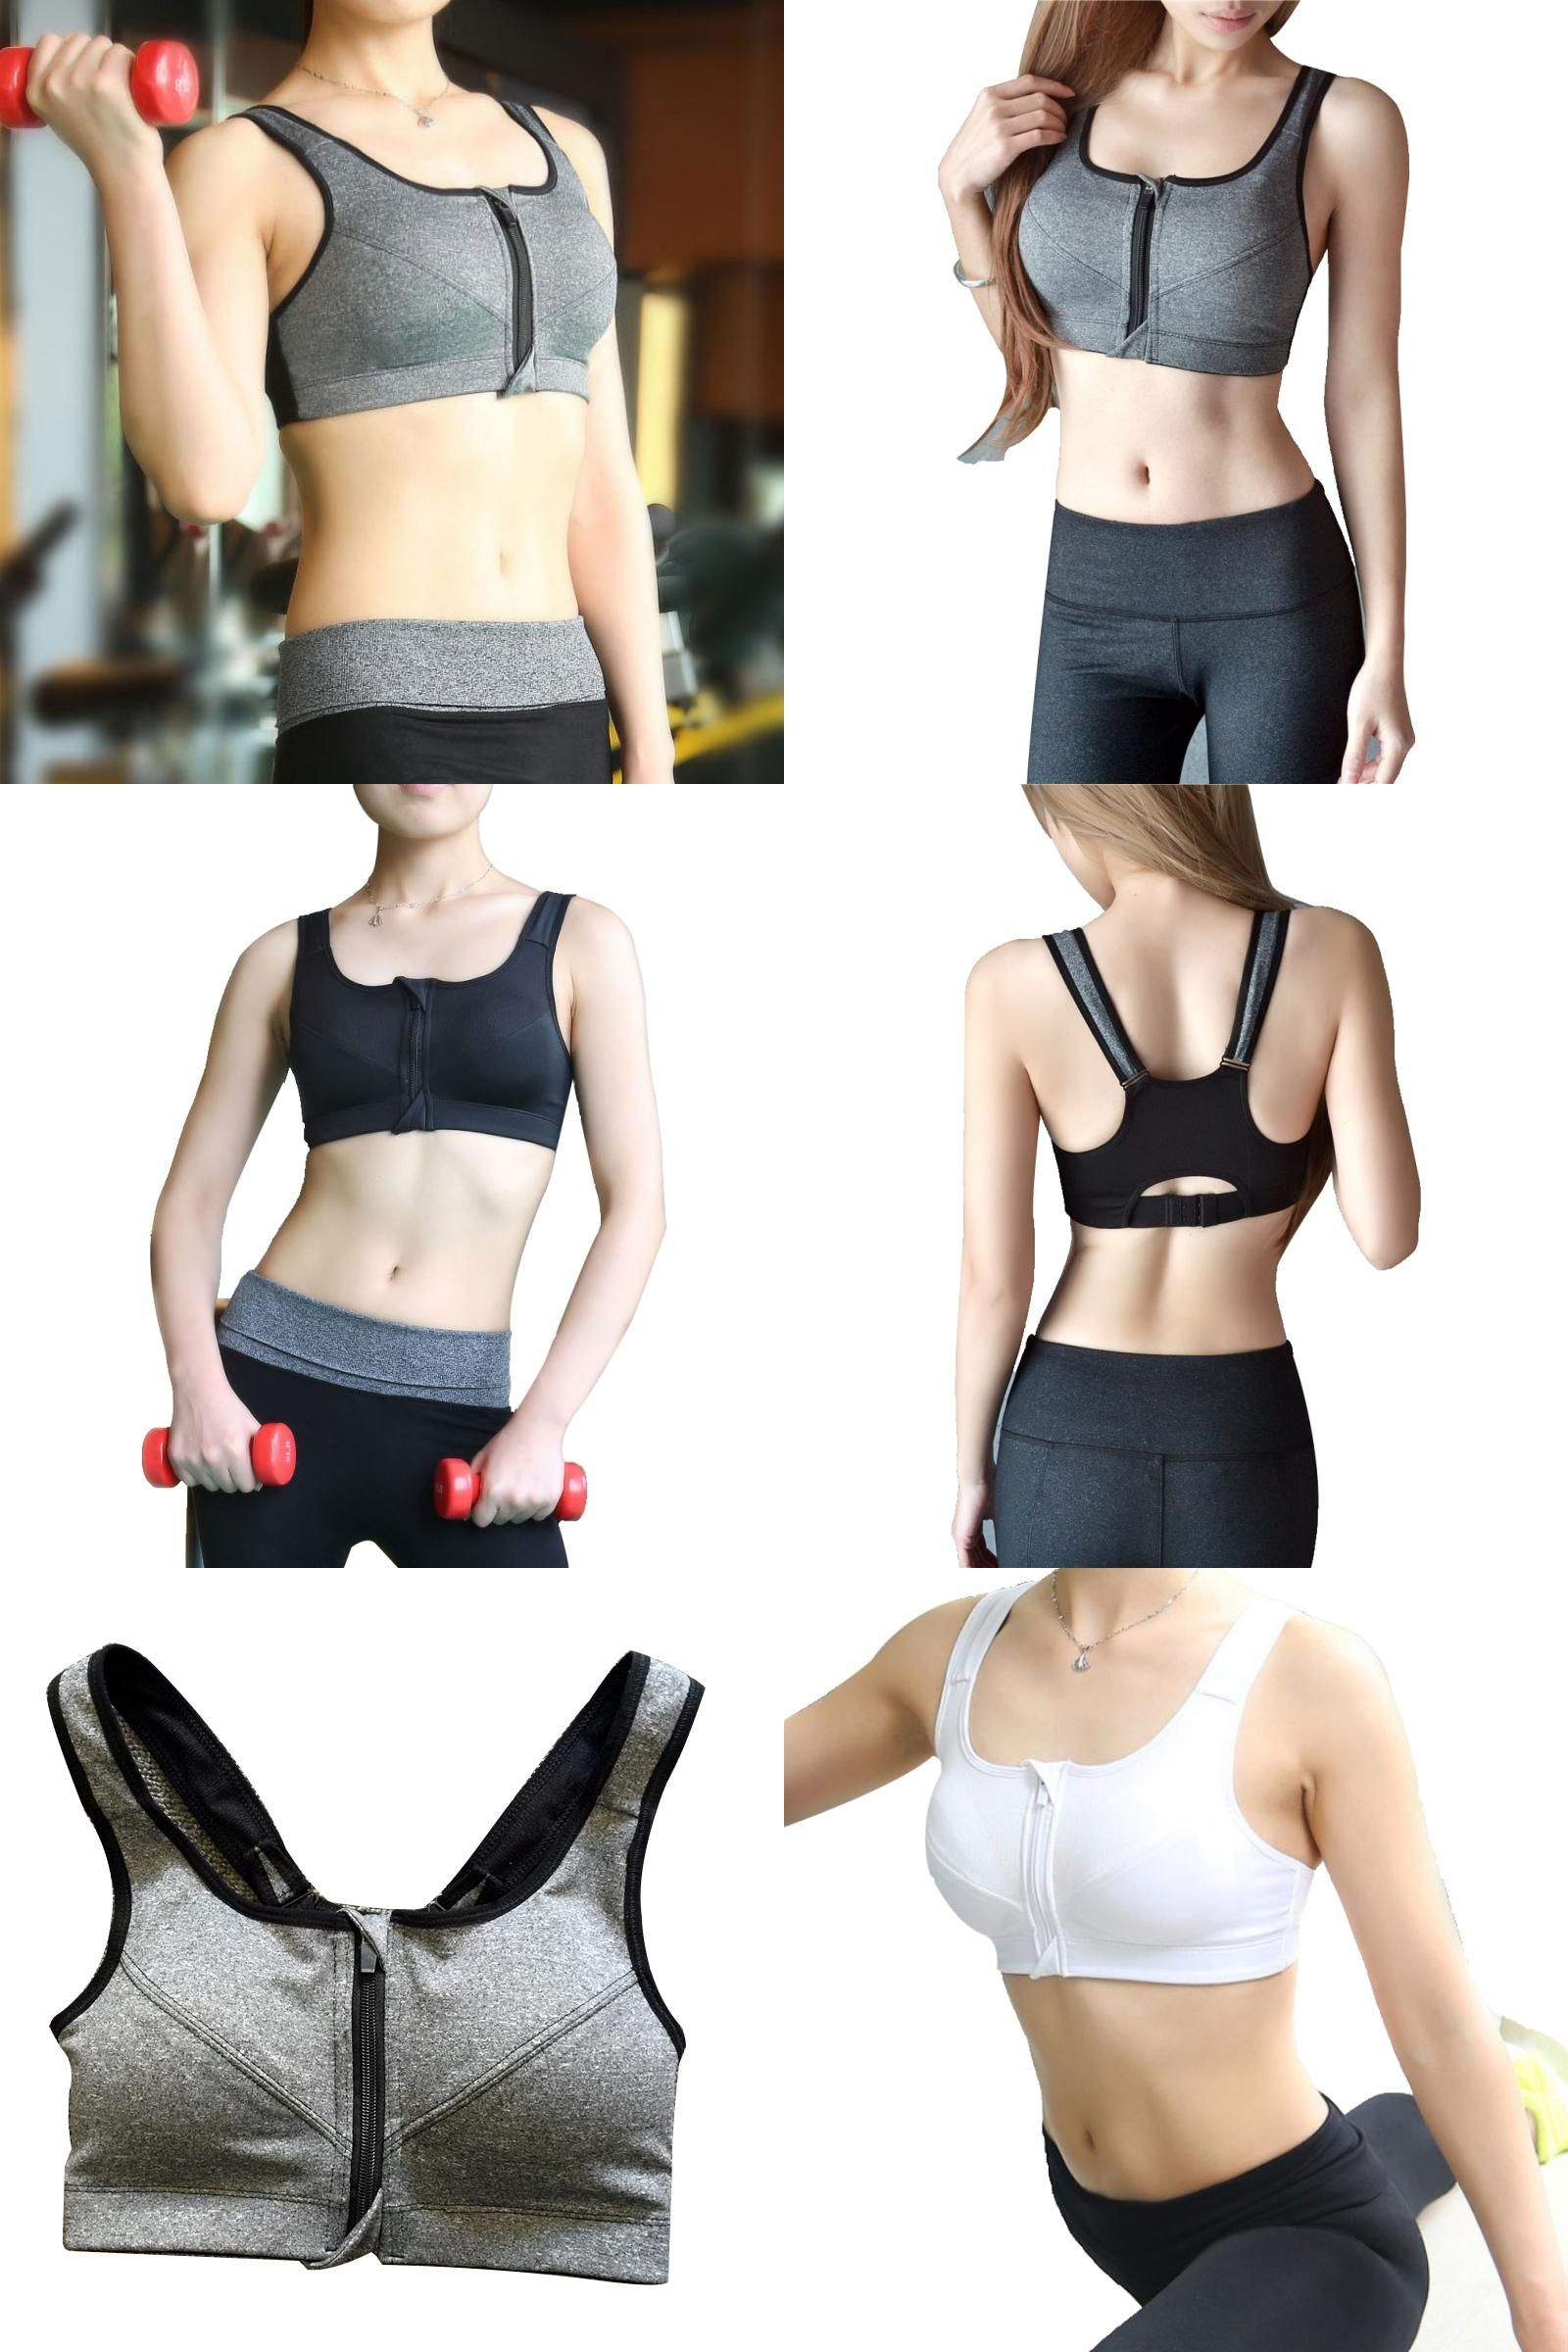 527610011c  Visit to Buy  Women Gym Sports Push Up Bras Underwear No Rims Fitness  Running